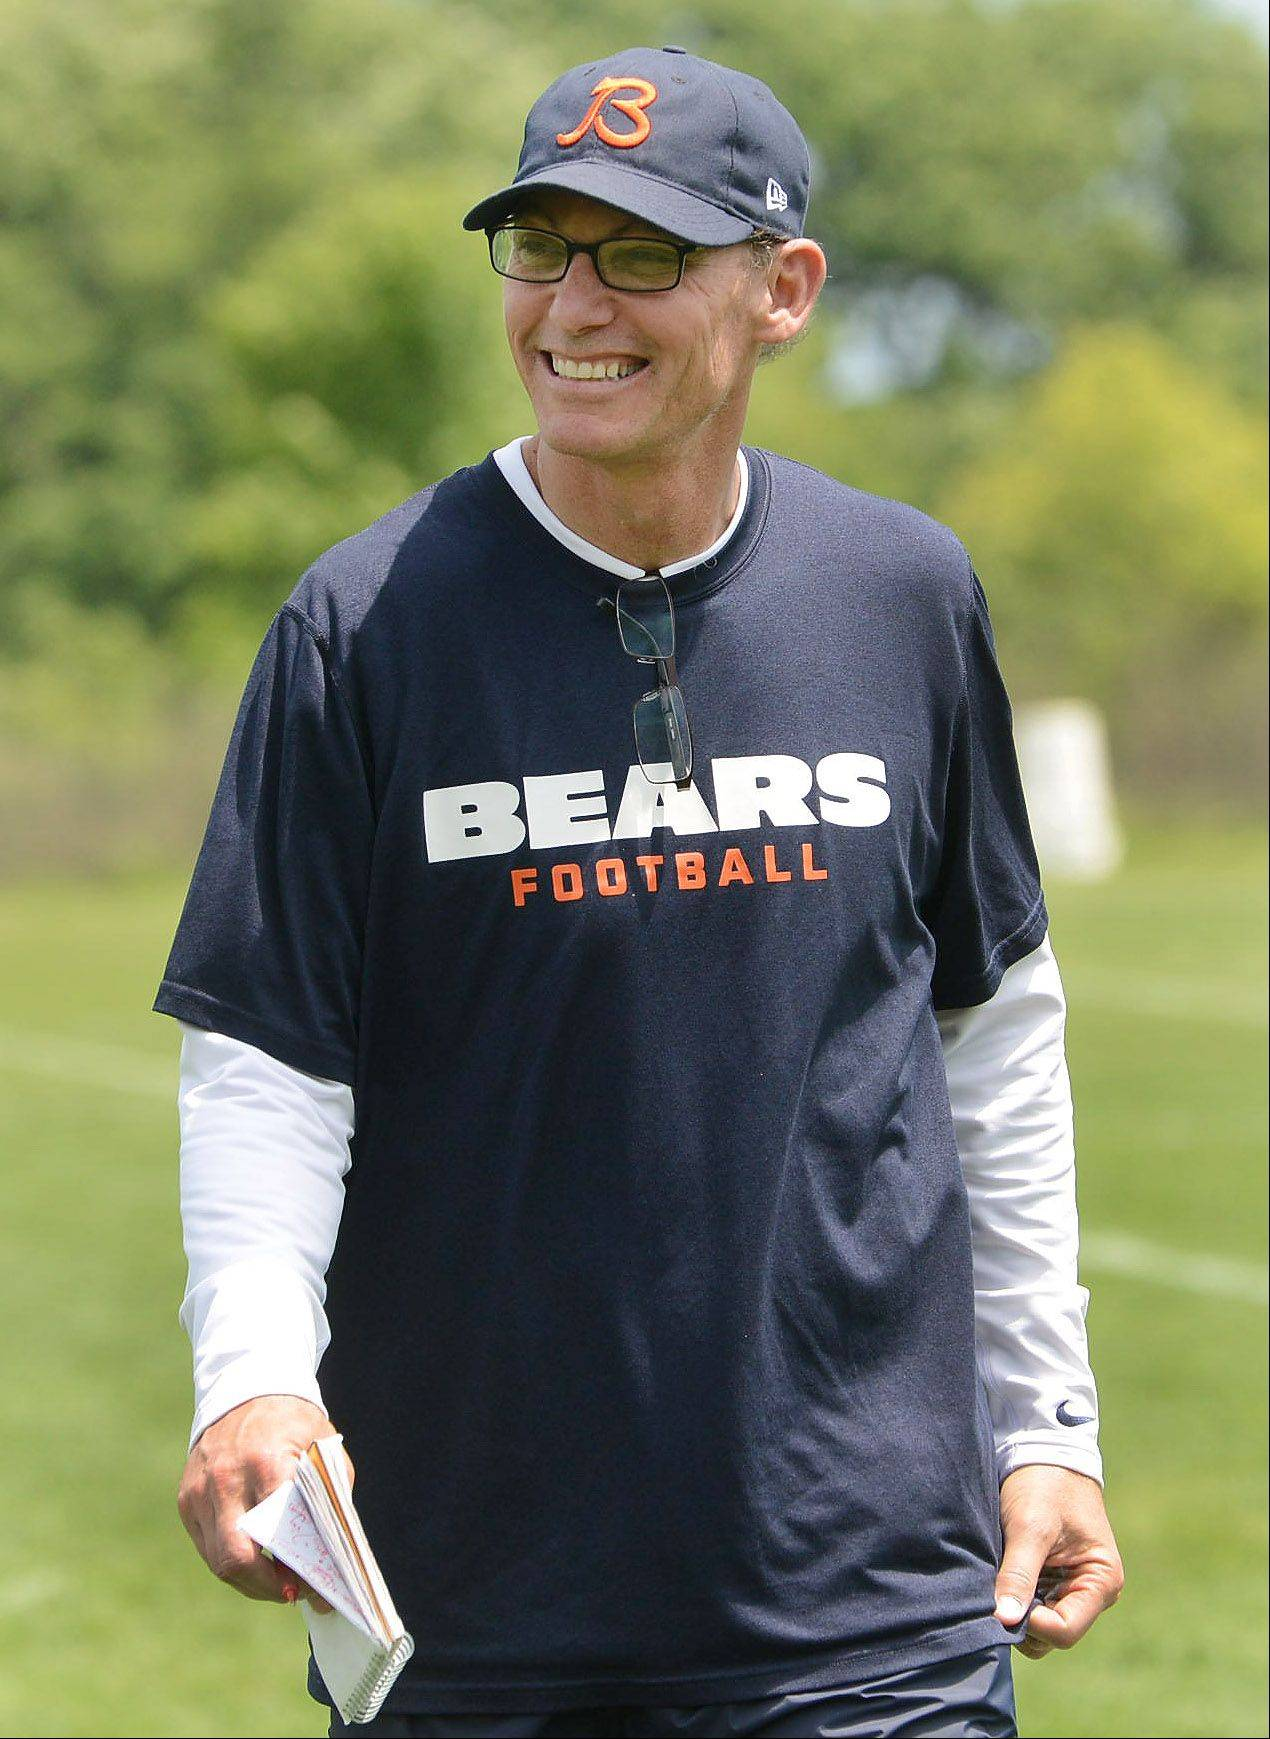 With the Bears finishing at 10-6 last season, Marc Trestman may be smiling now, but he won�t have the usual grace period given to most new NFL coaches.